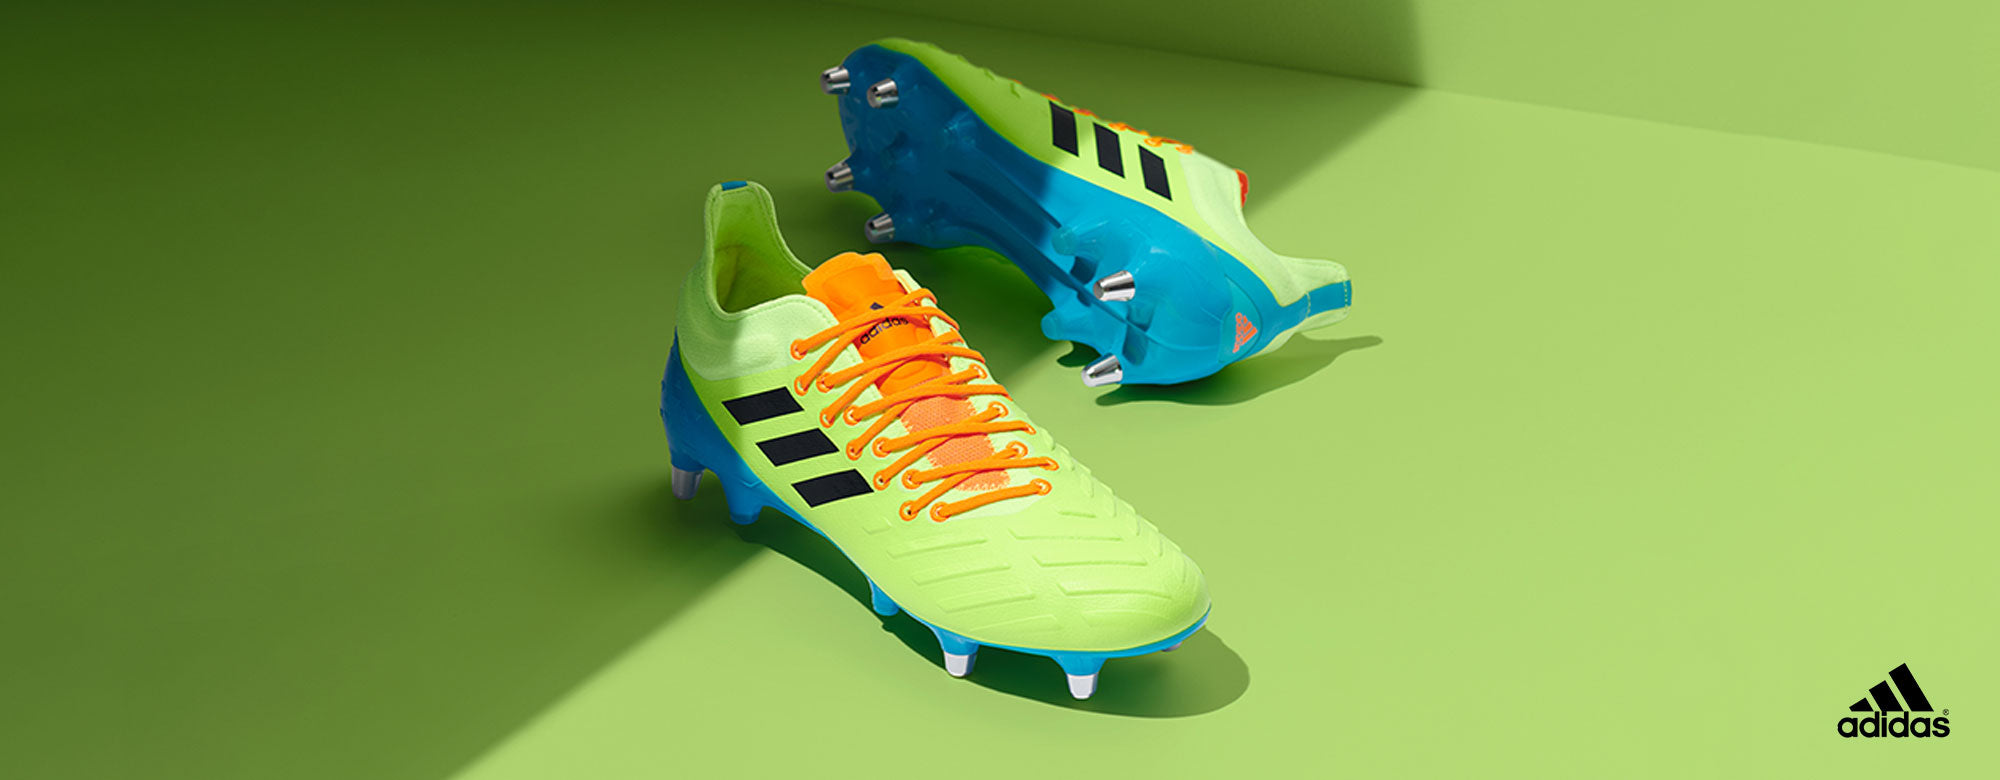 Rugby Boots by Gilbert, adidas. Mizuno, Puma, and more